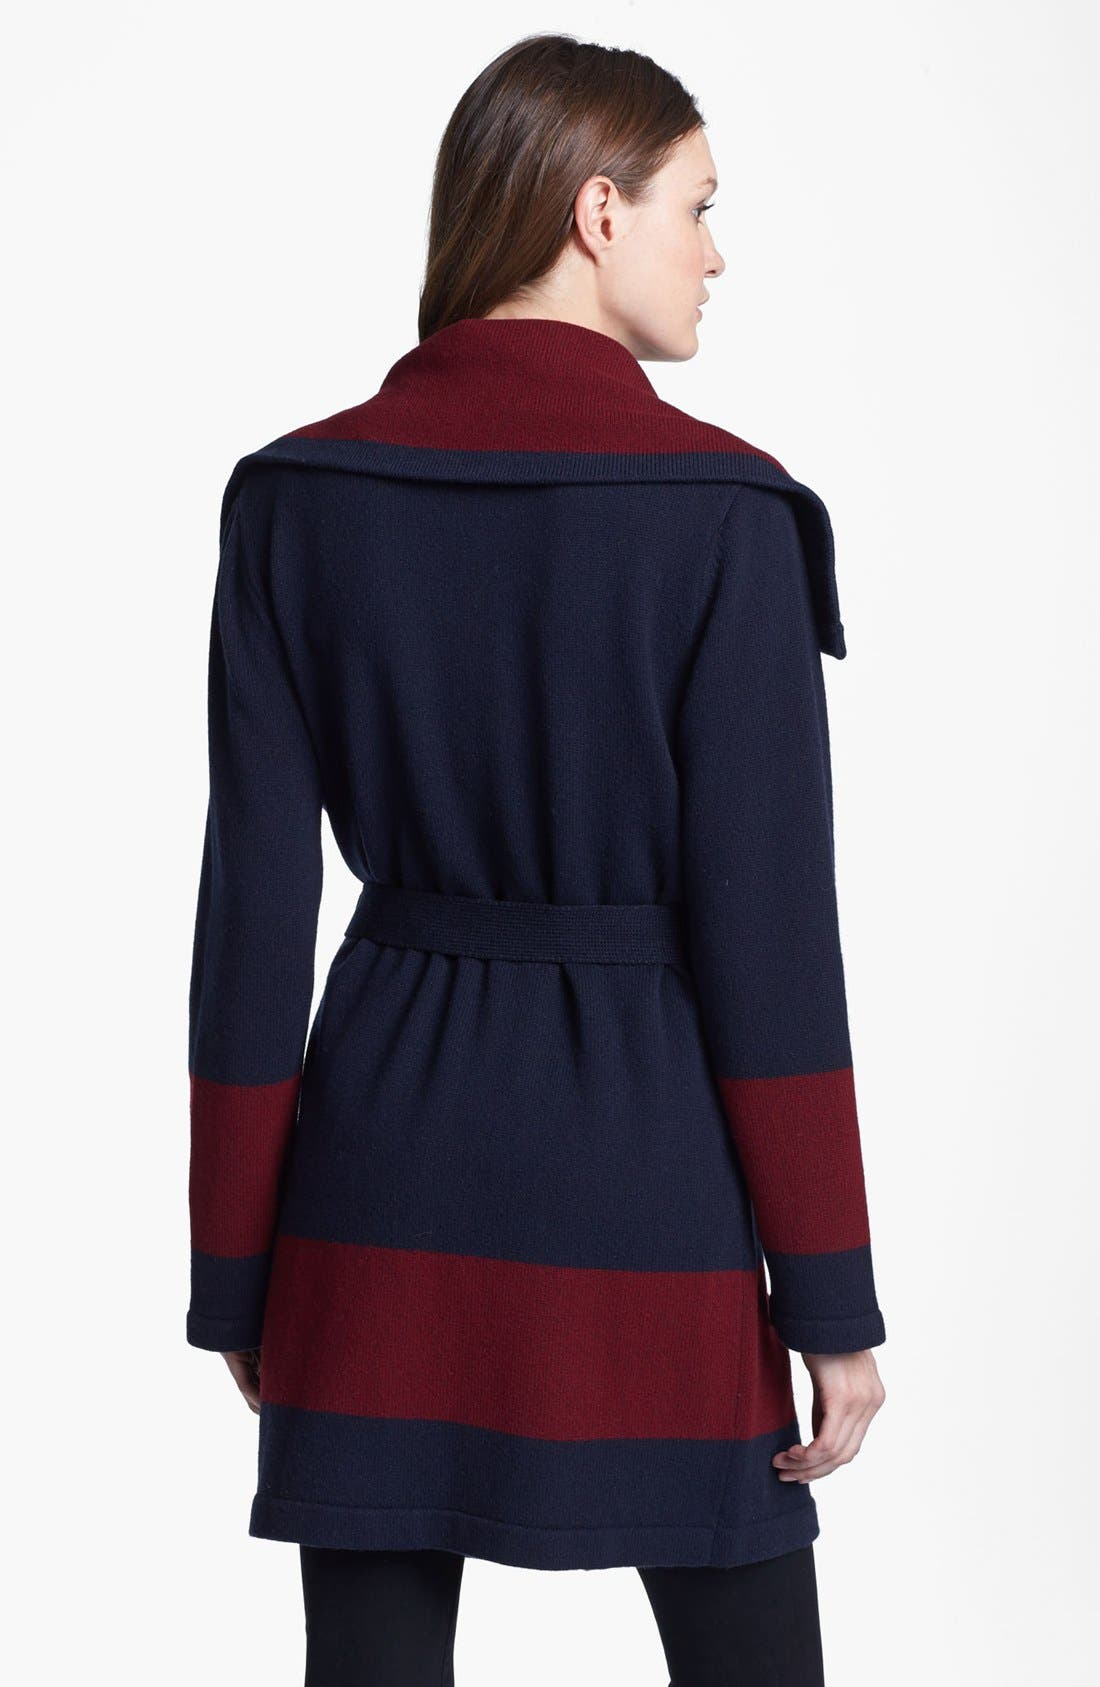 'Archie' Belted Wool Sweater,                             Alternate thumbnail 3, color,                             438